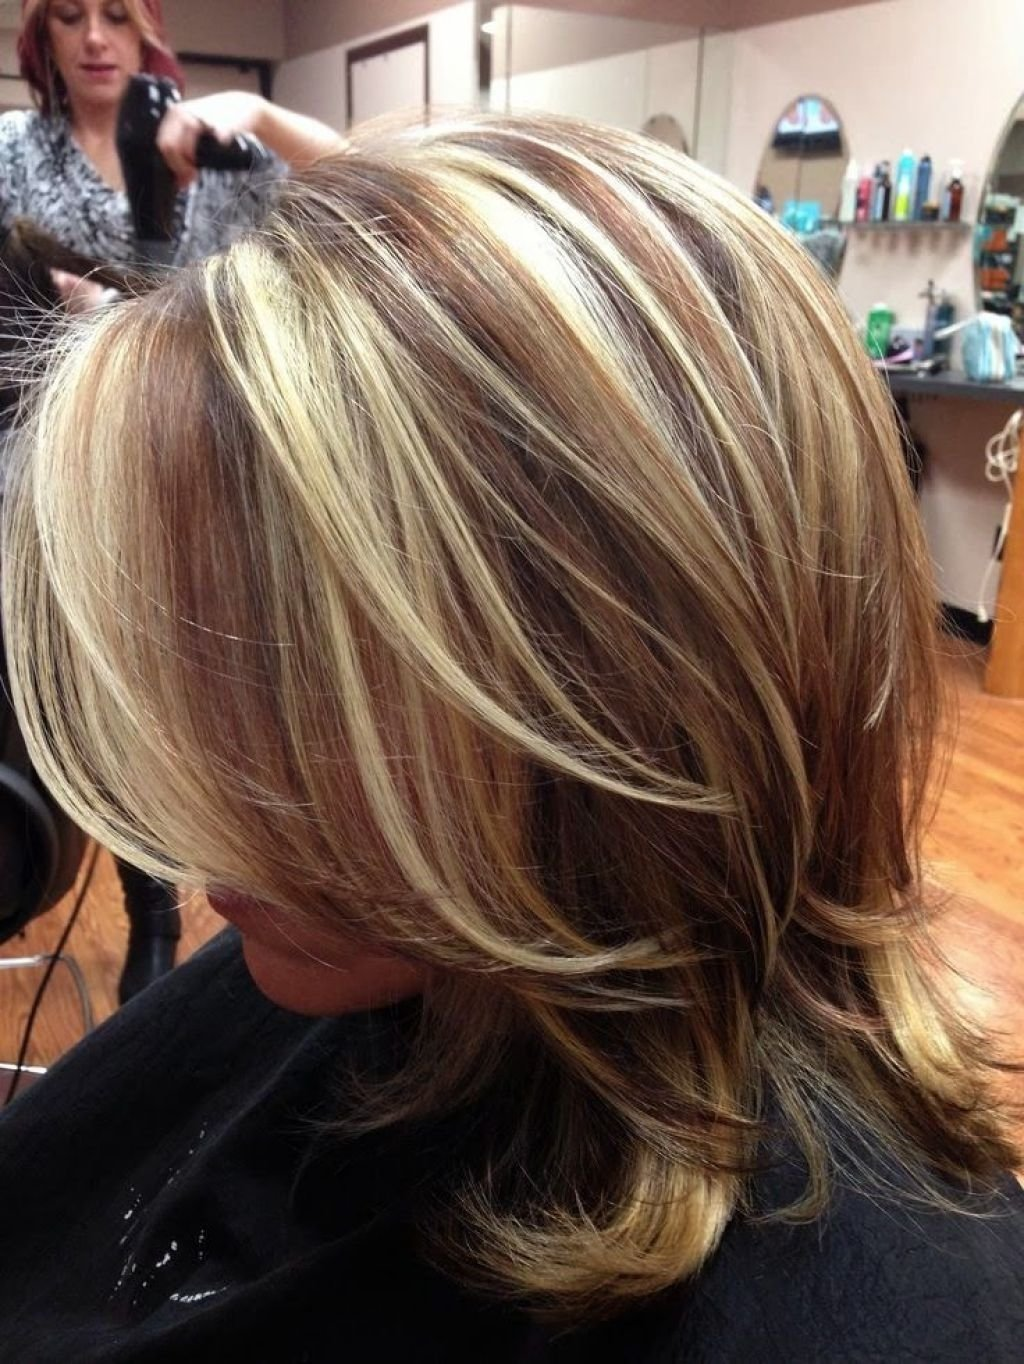 10 Gorgeous Hair Colors With Highlights Ideas highlights and lowlights ideas 4 hair color highlight and lowlight 2020